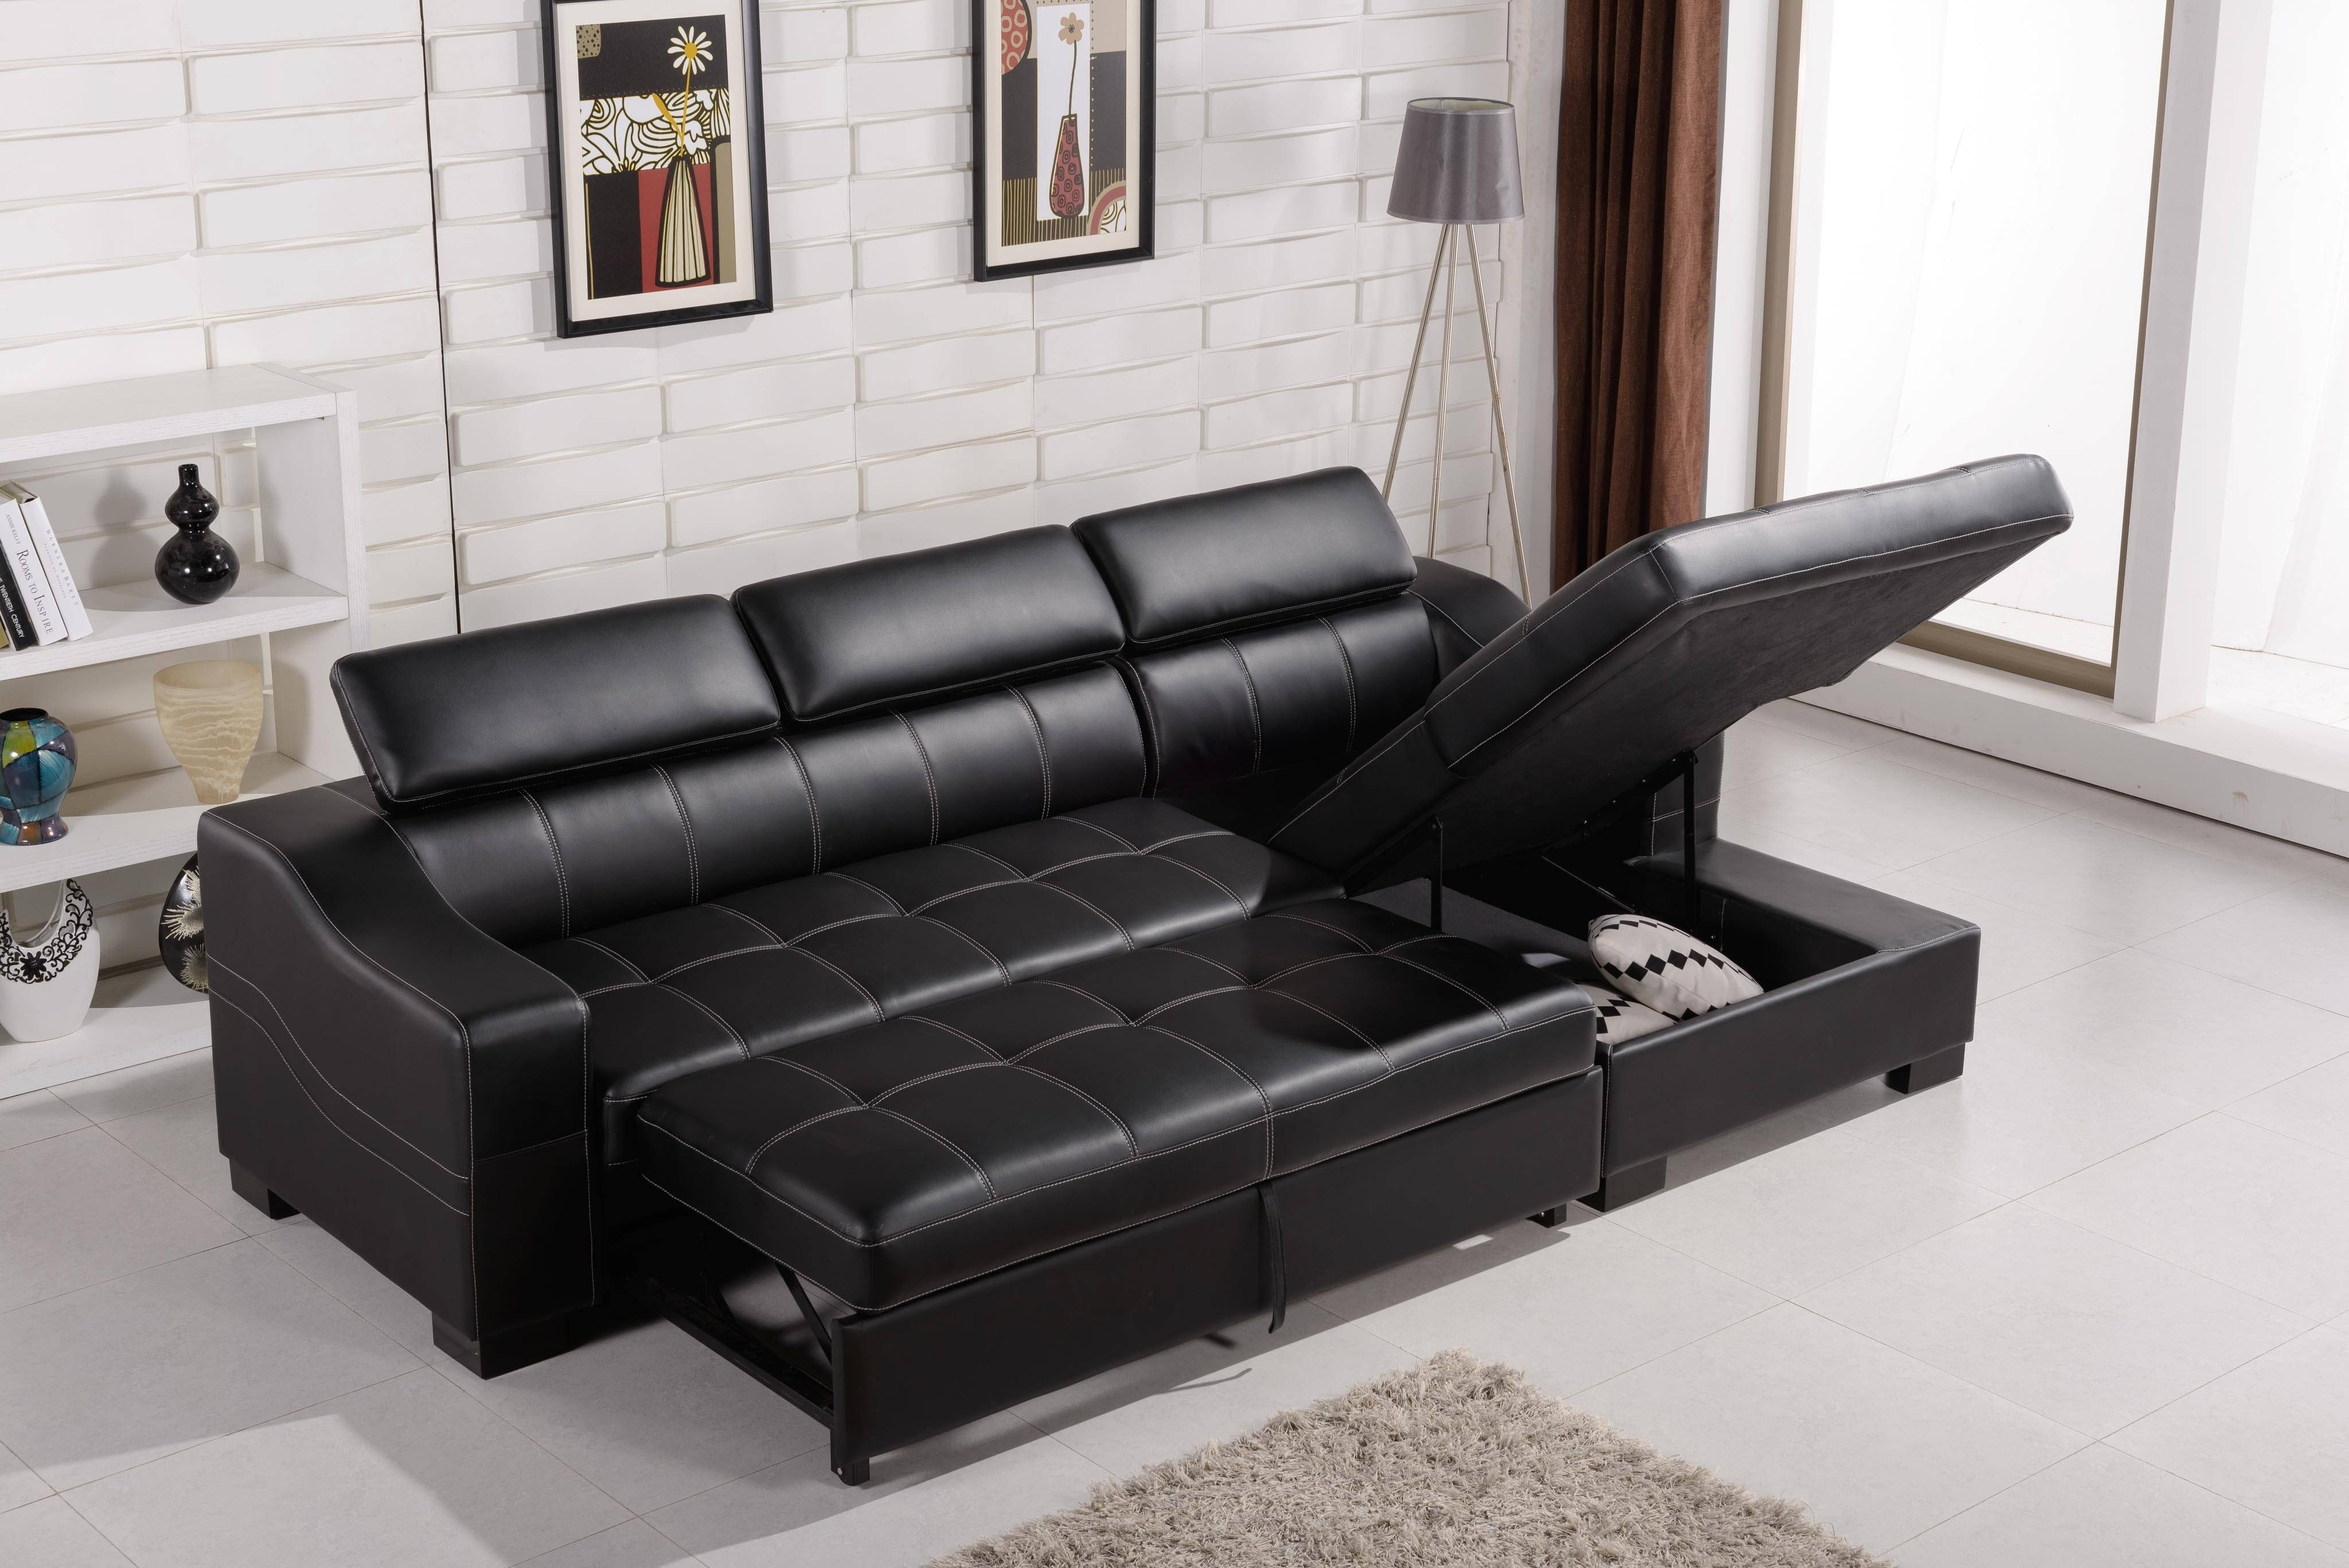 Furniture: Exciting Sectional Sofas Costco For Your Family Room inside Leather Sofa Beds With Storage (Image 12 of 30)